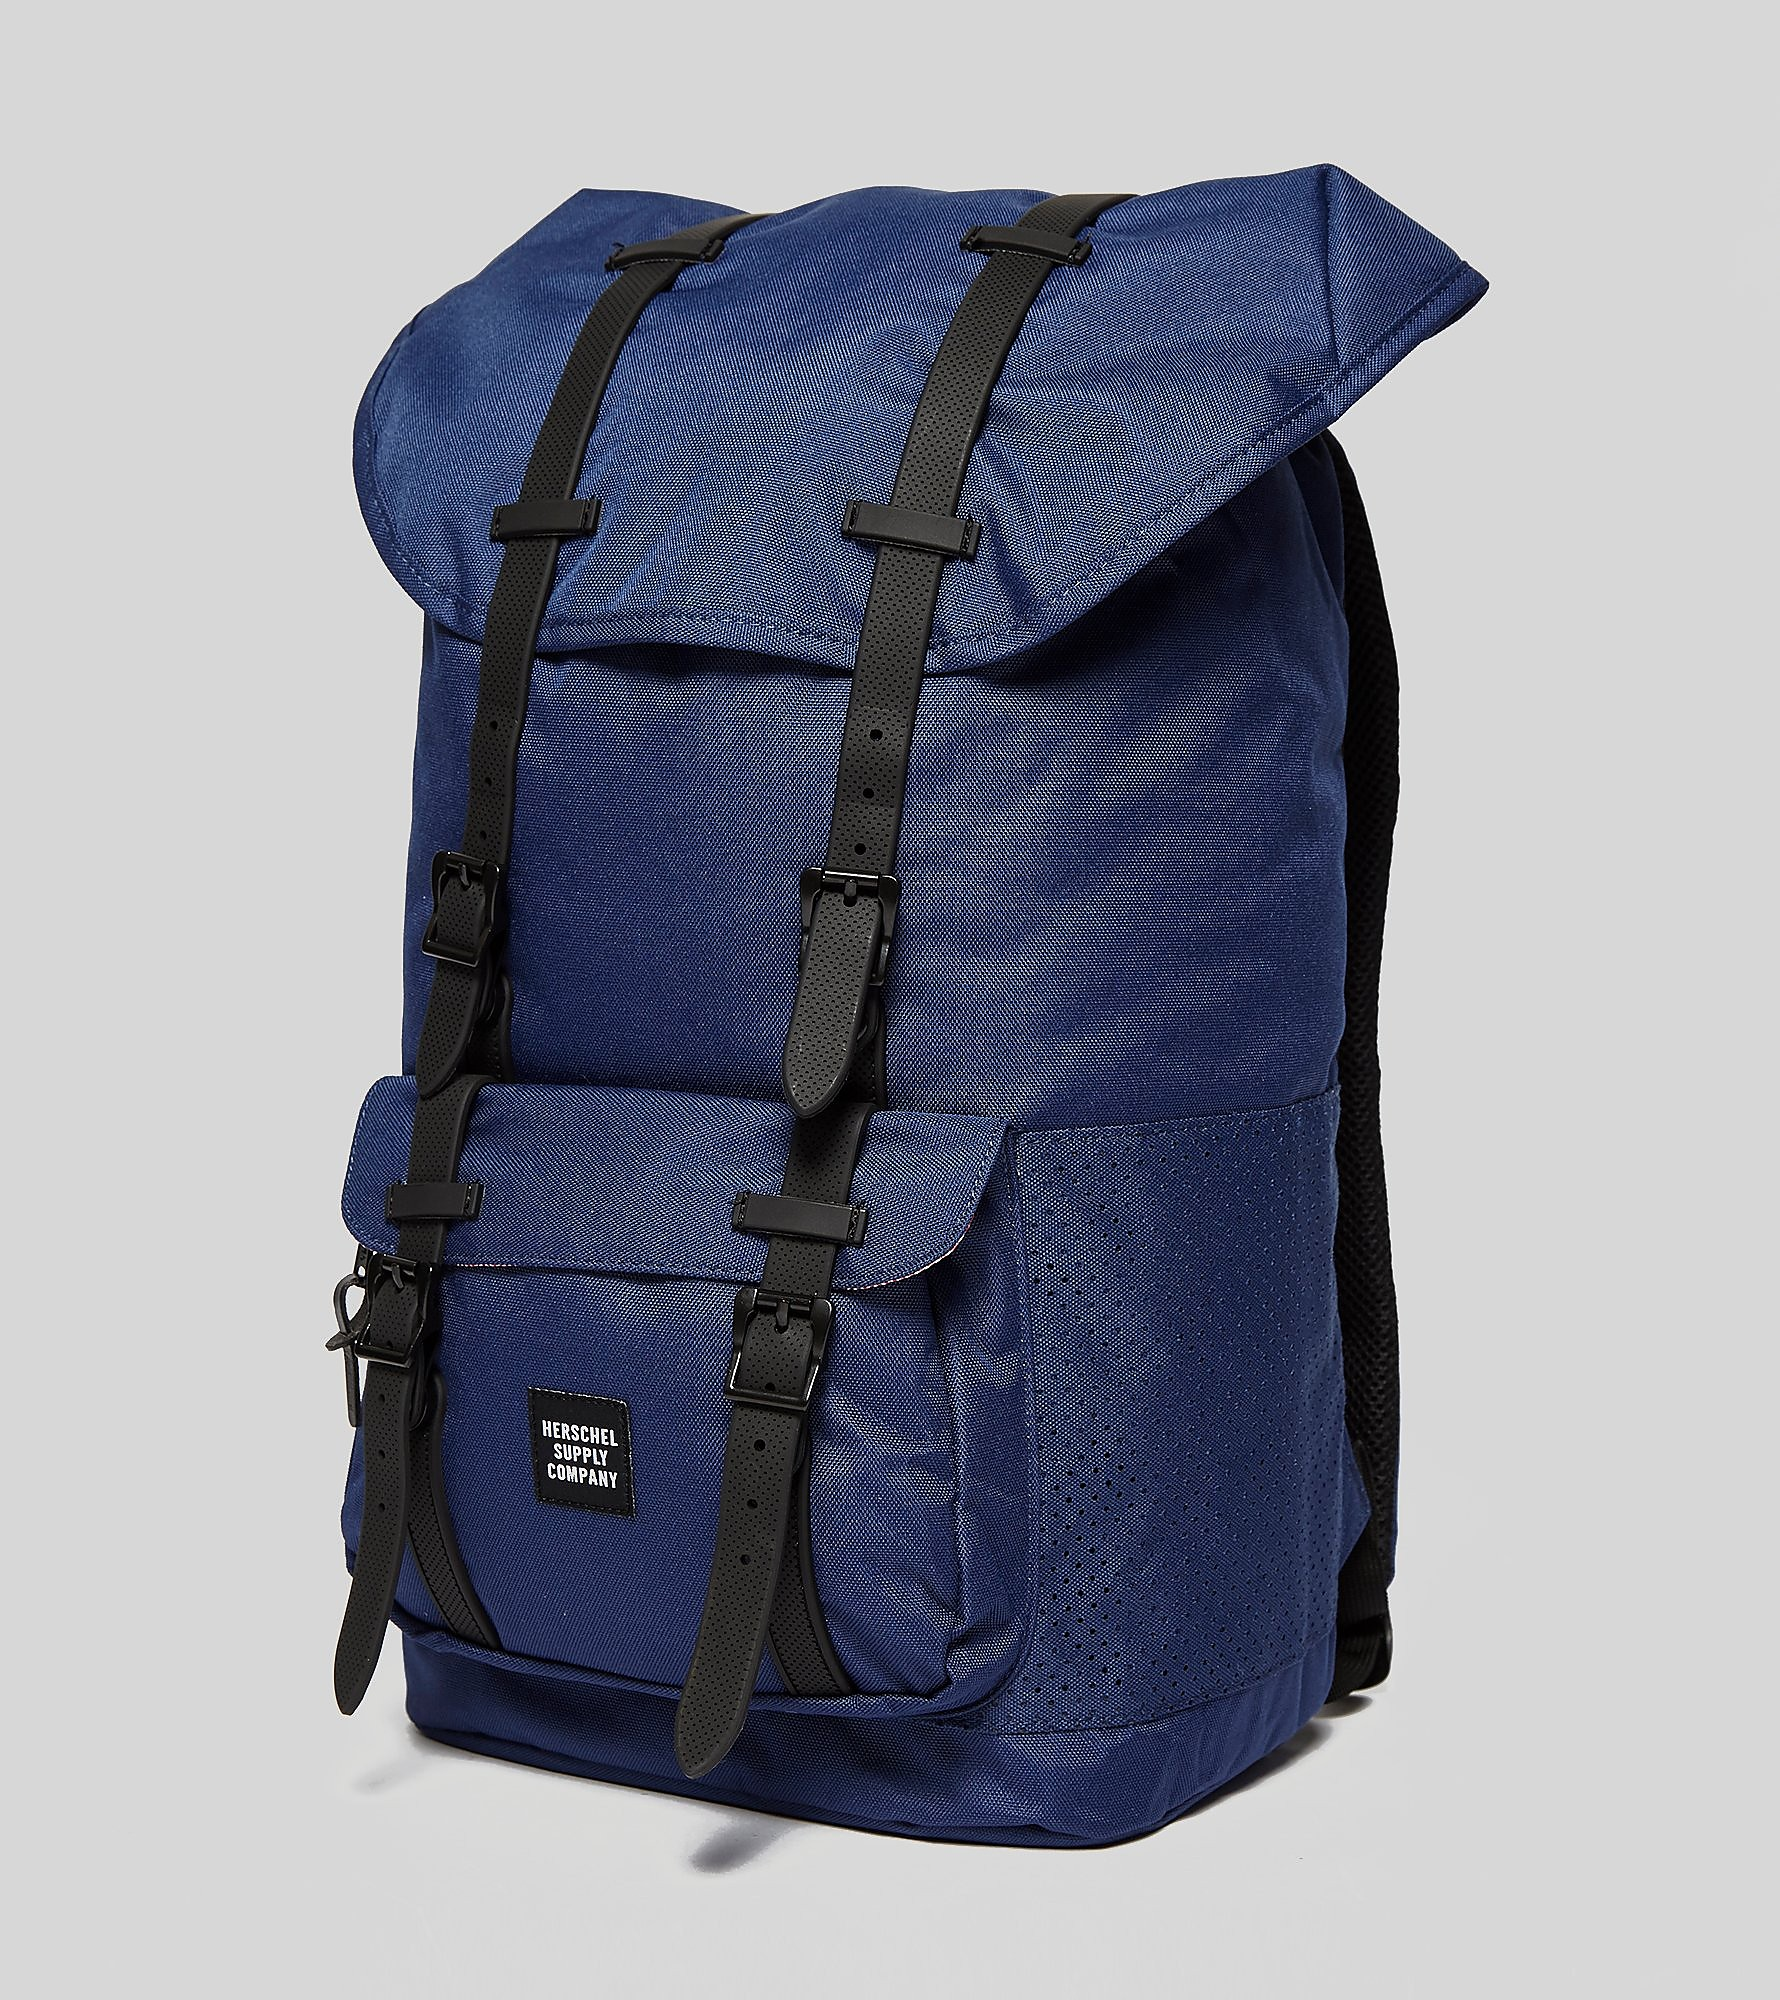 Herschel Supply Co Little USA Aspect Backpack